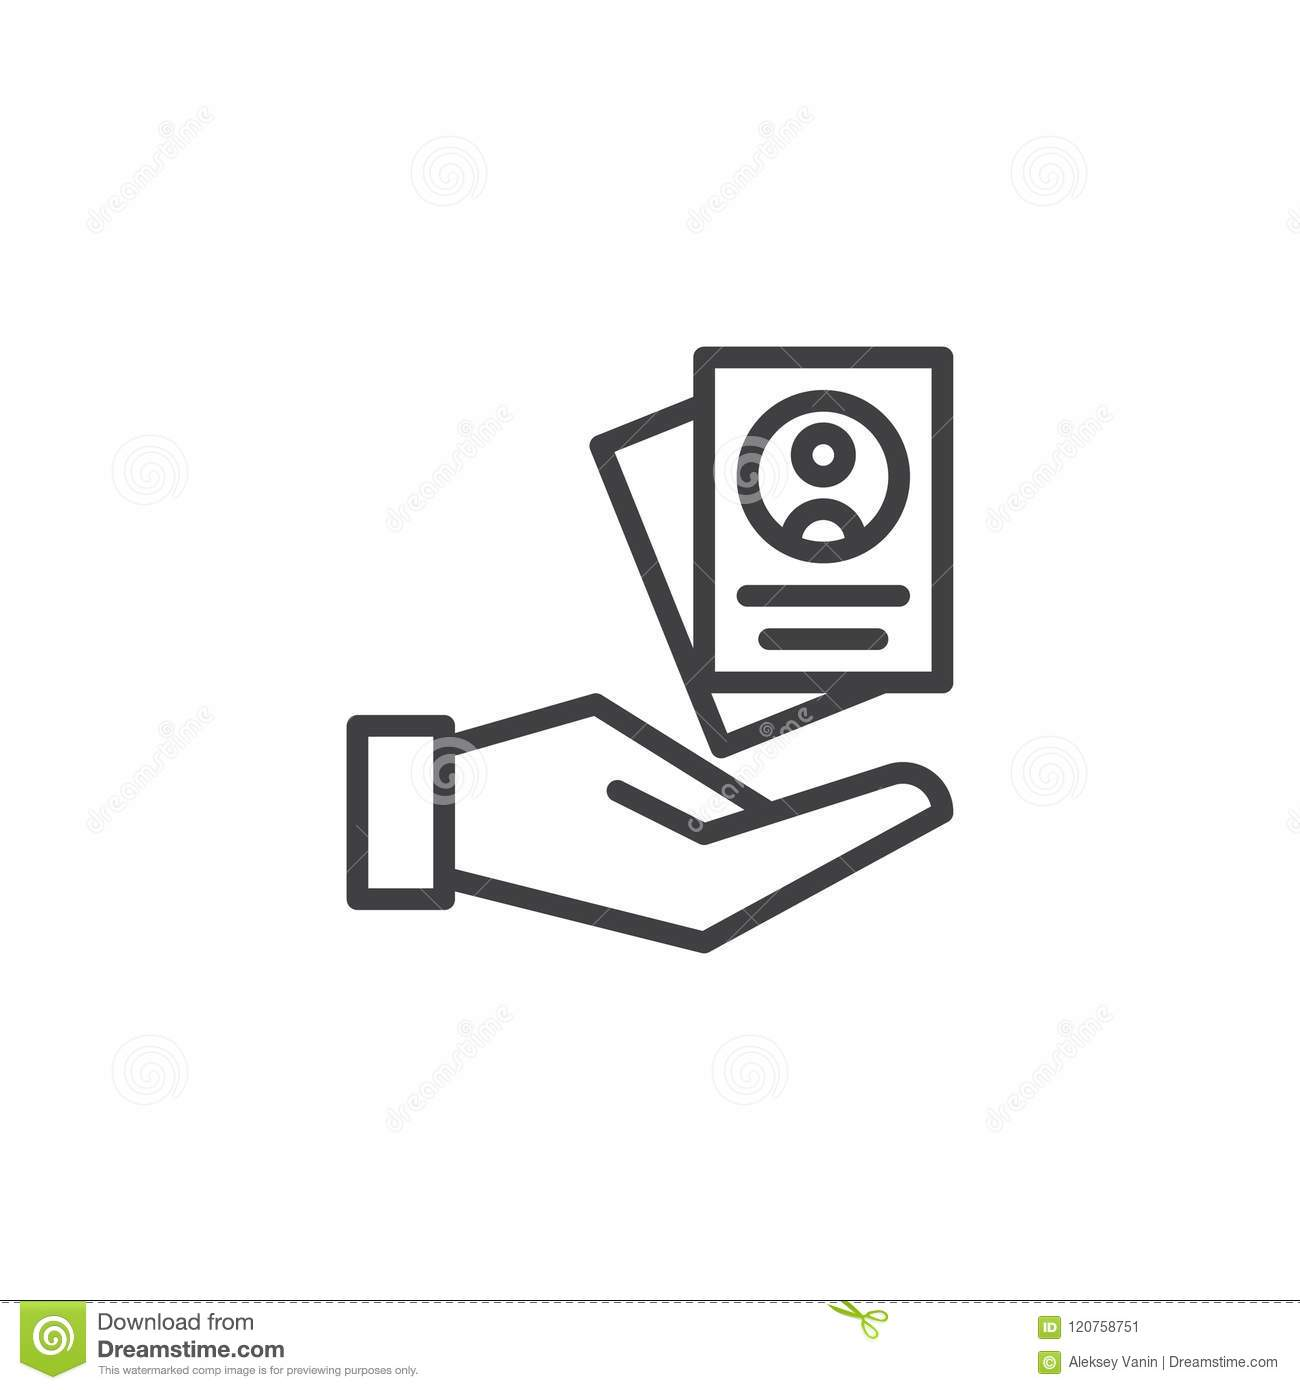 Resume Form In Hand Outline Icon Stock Vector - Illustration of ...